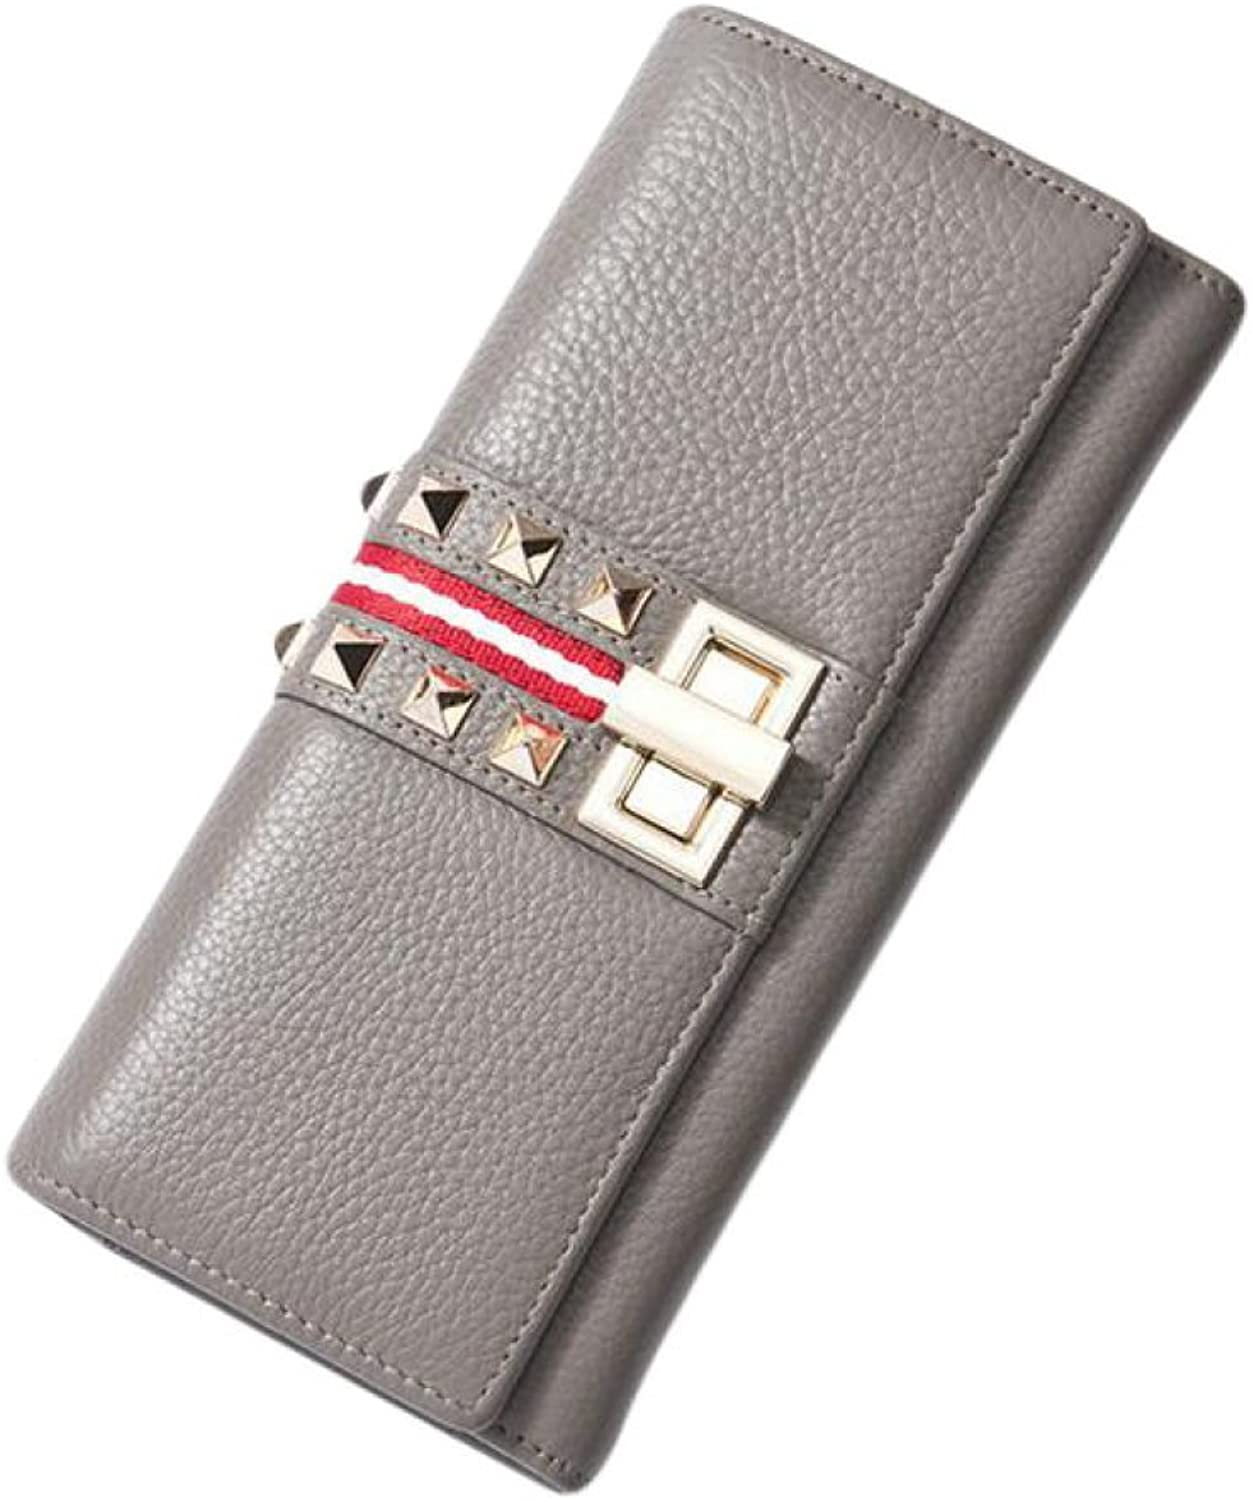 Fashion Personality Wallet Ladies Long Paragraph Lock Rivet Handbag Bag,GreyOneSize